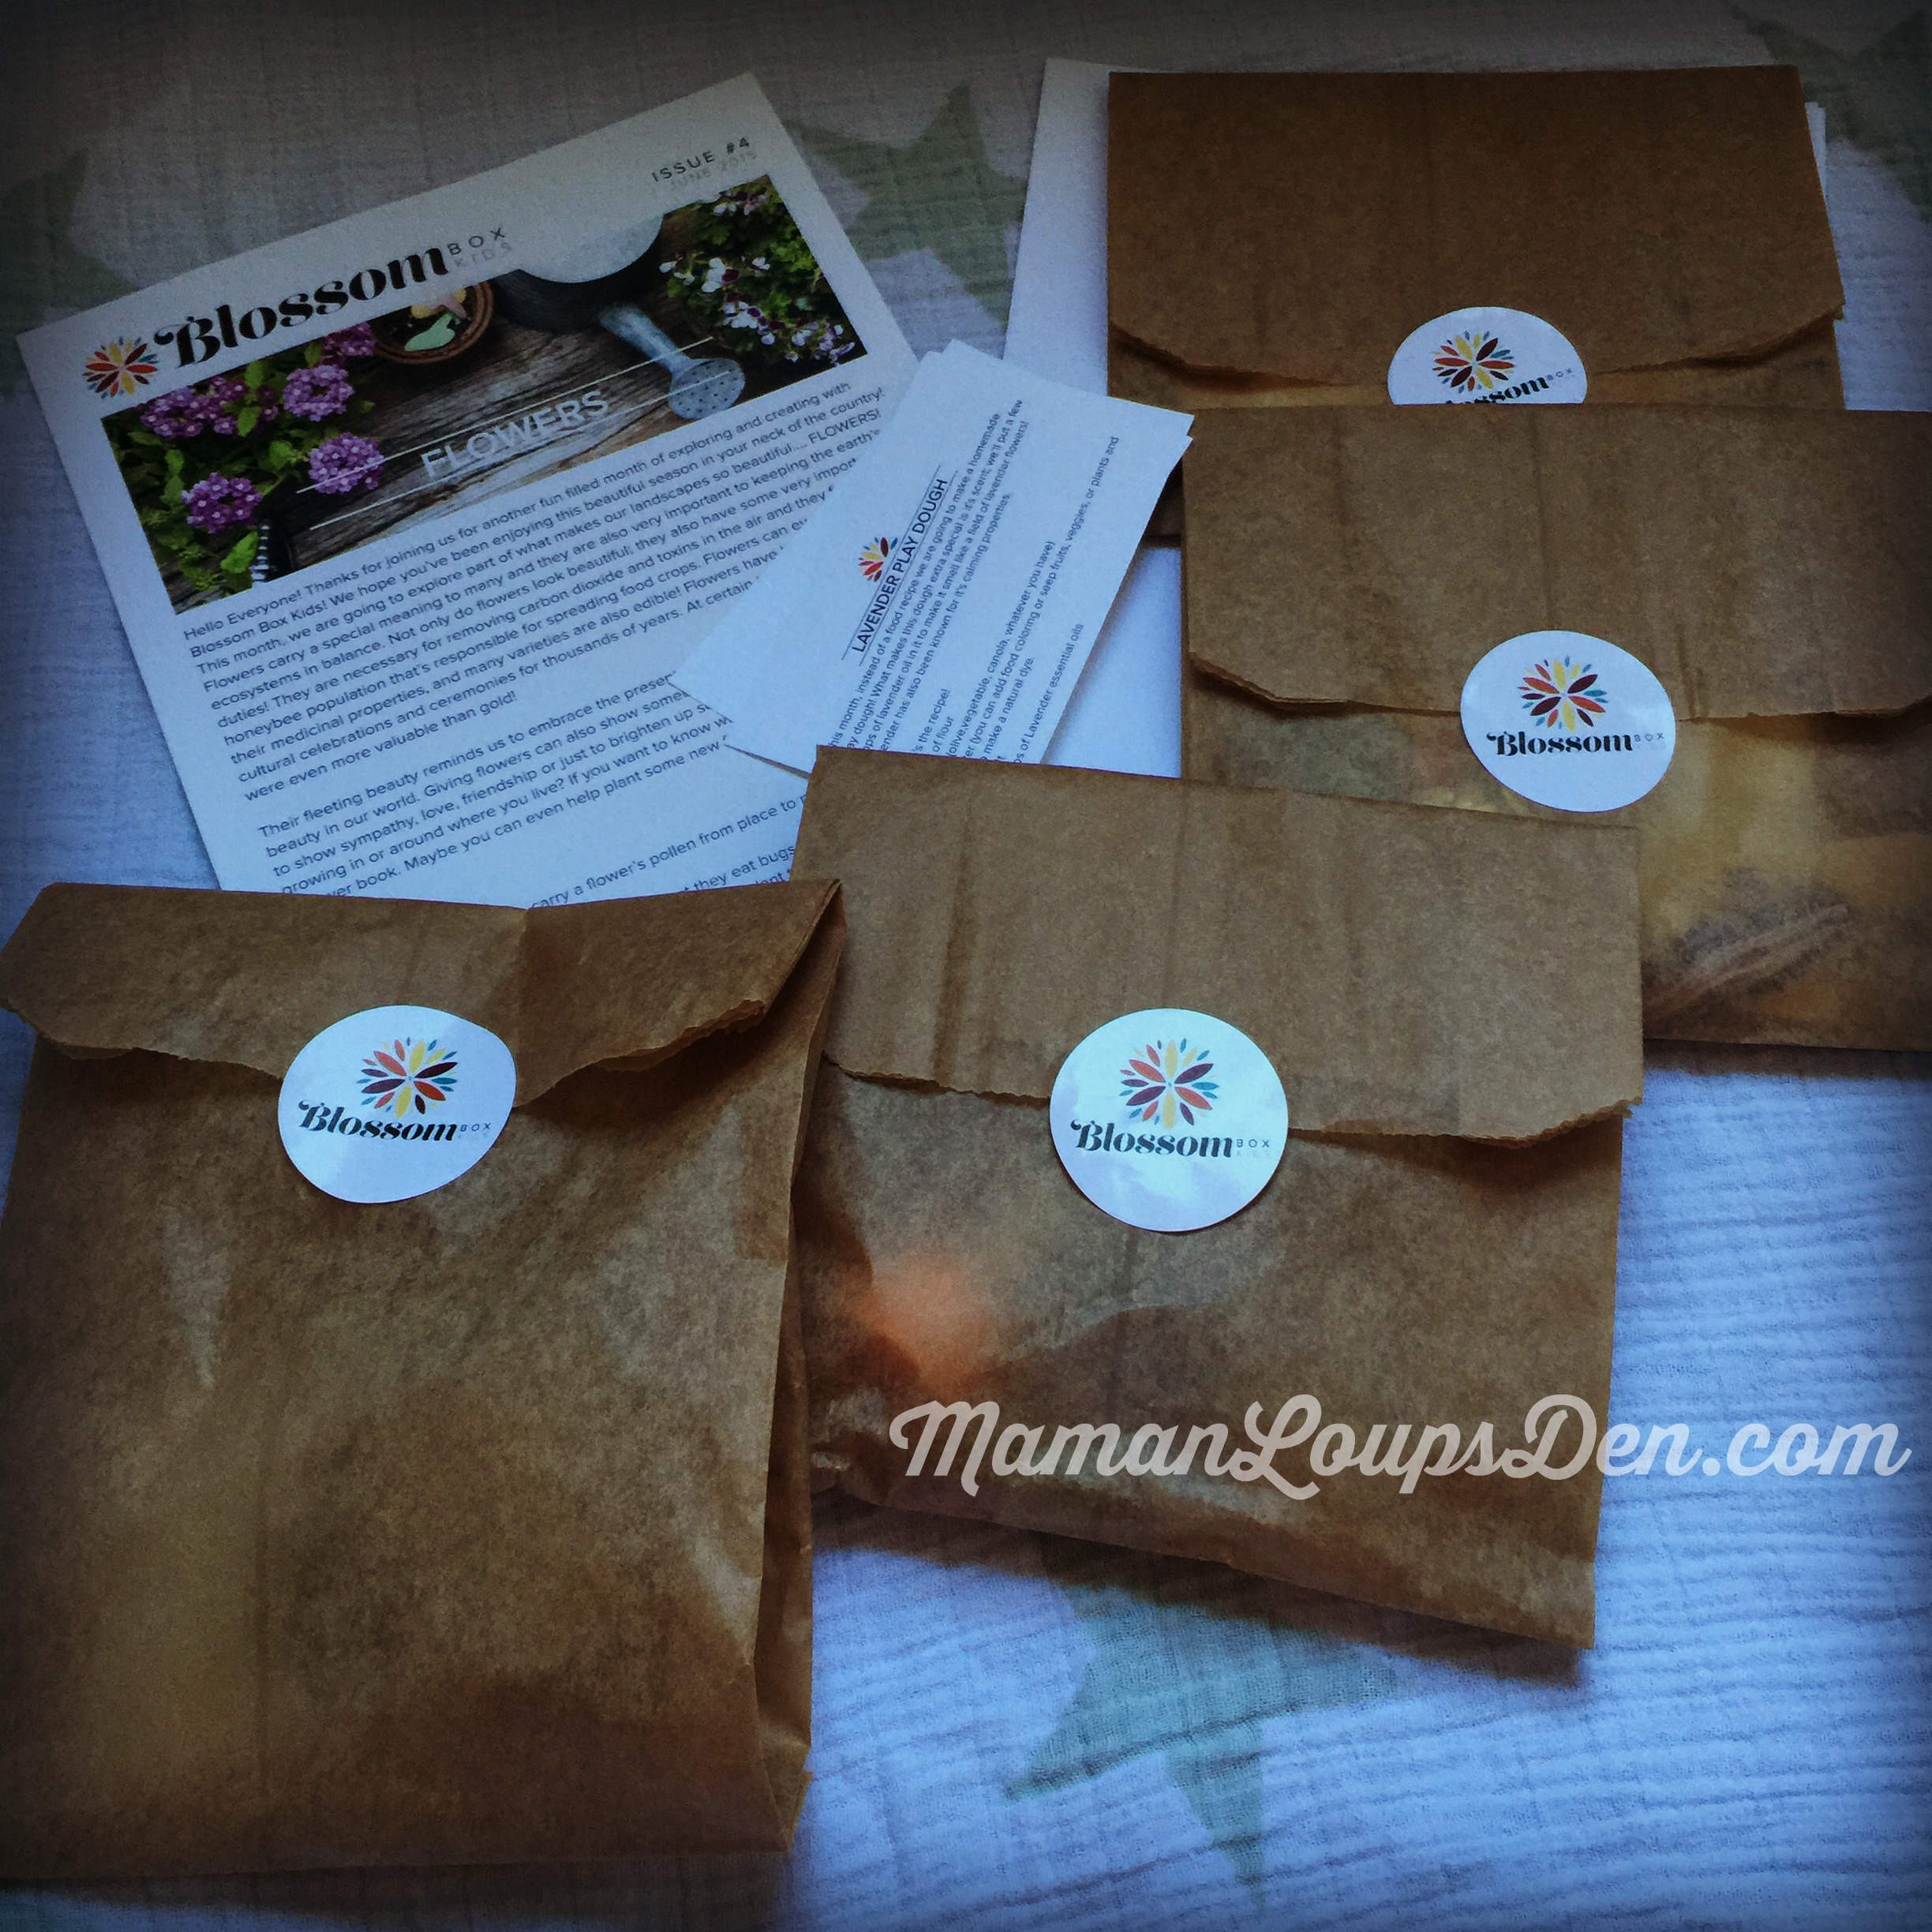 Blossom Box Review by Maman Loup's Den Box Contents